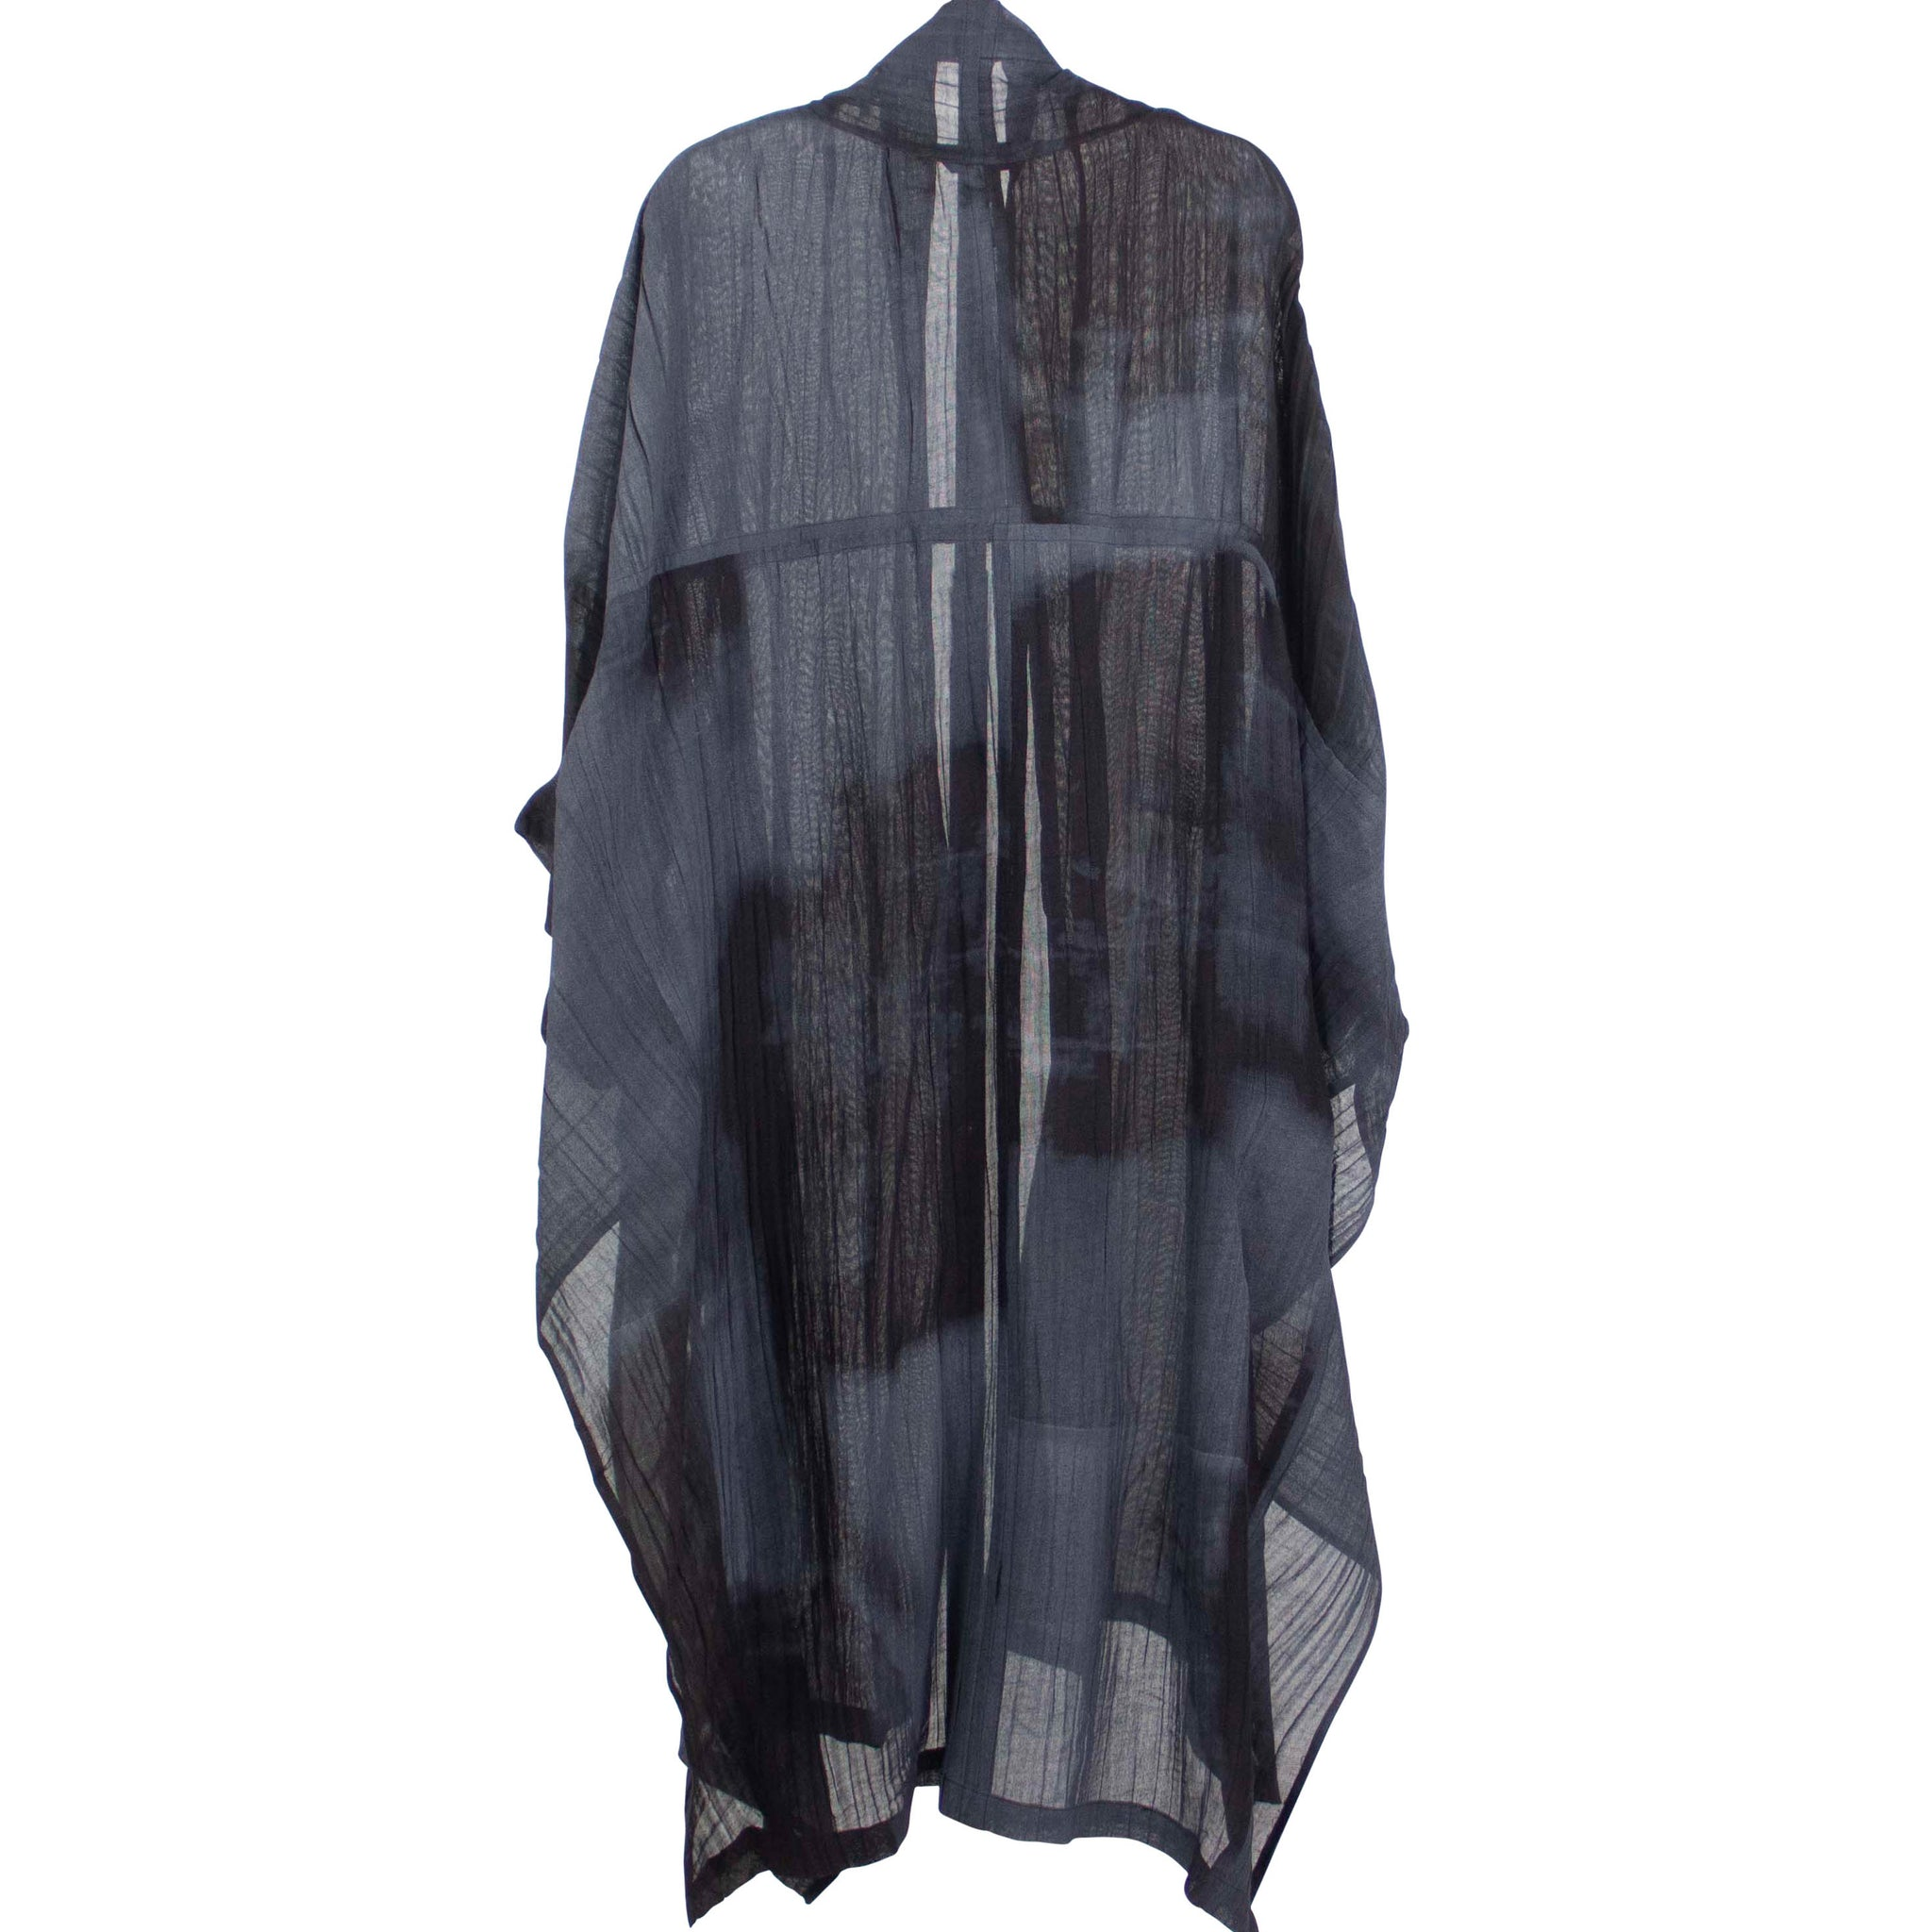 Moyuru Black & Grey Print Duster